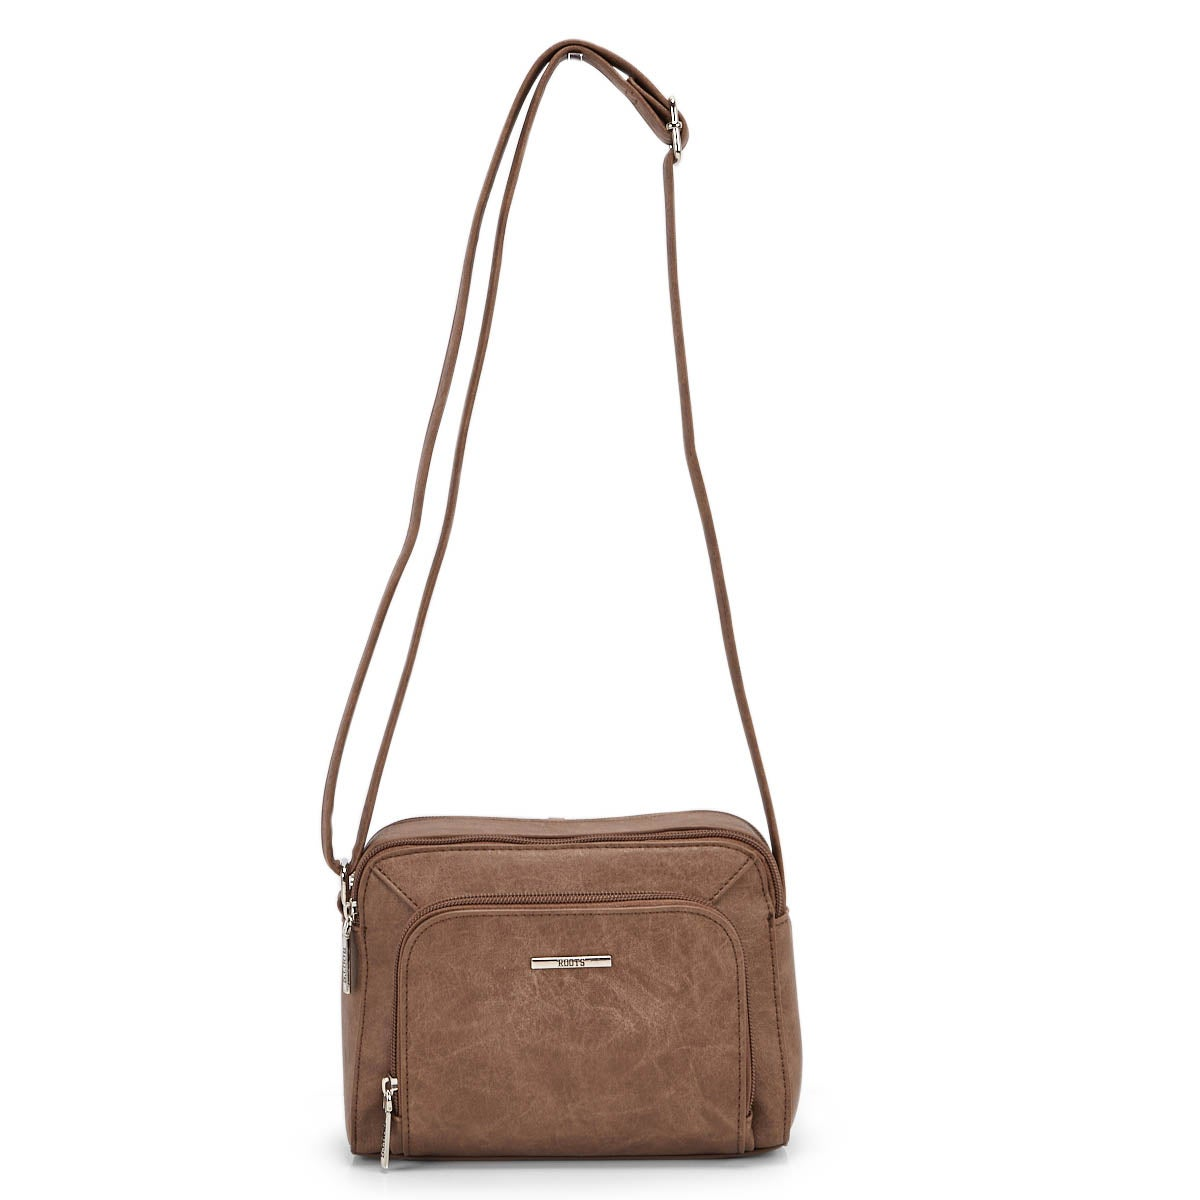 Lds Roots73 camel crossbody camera bag